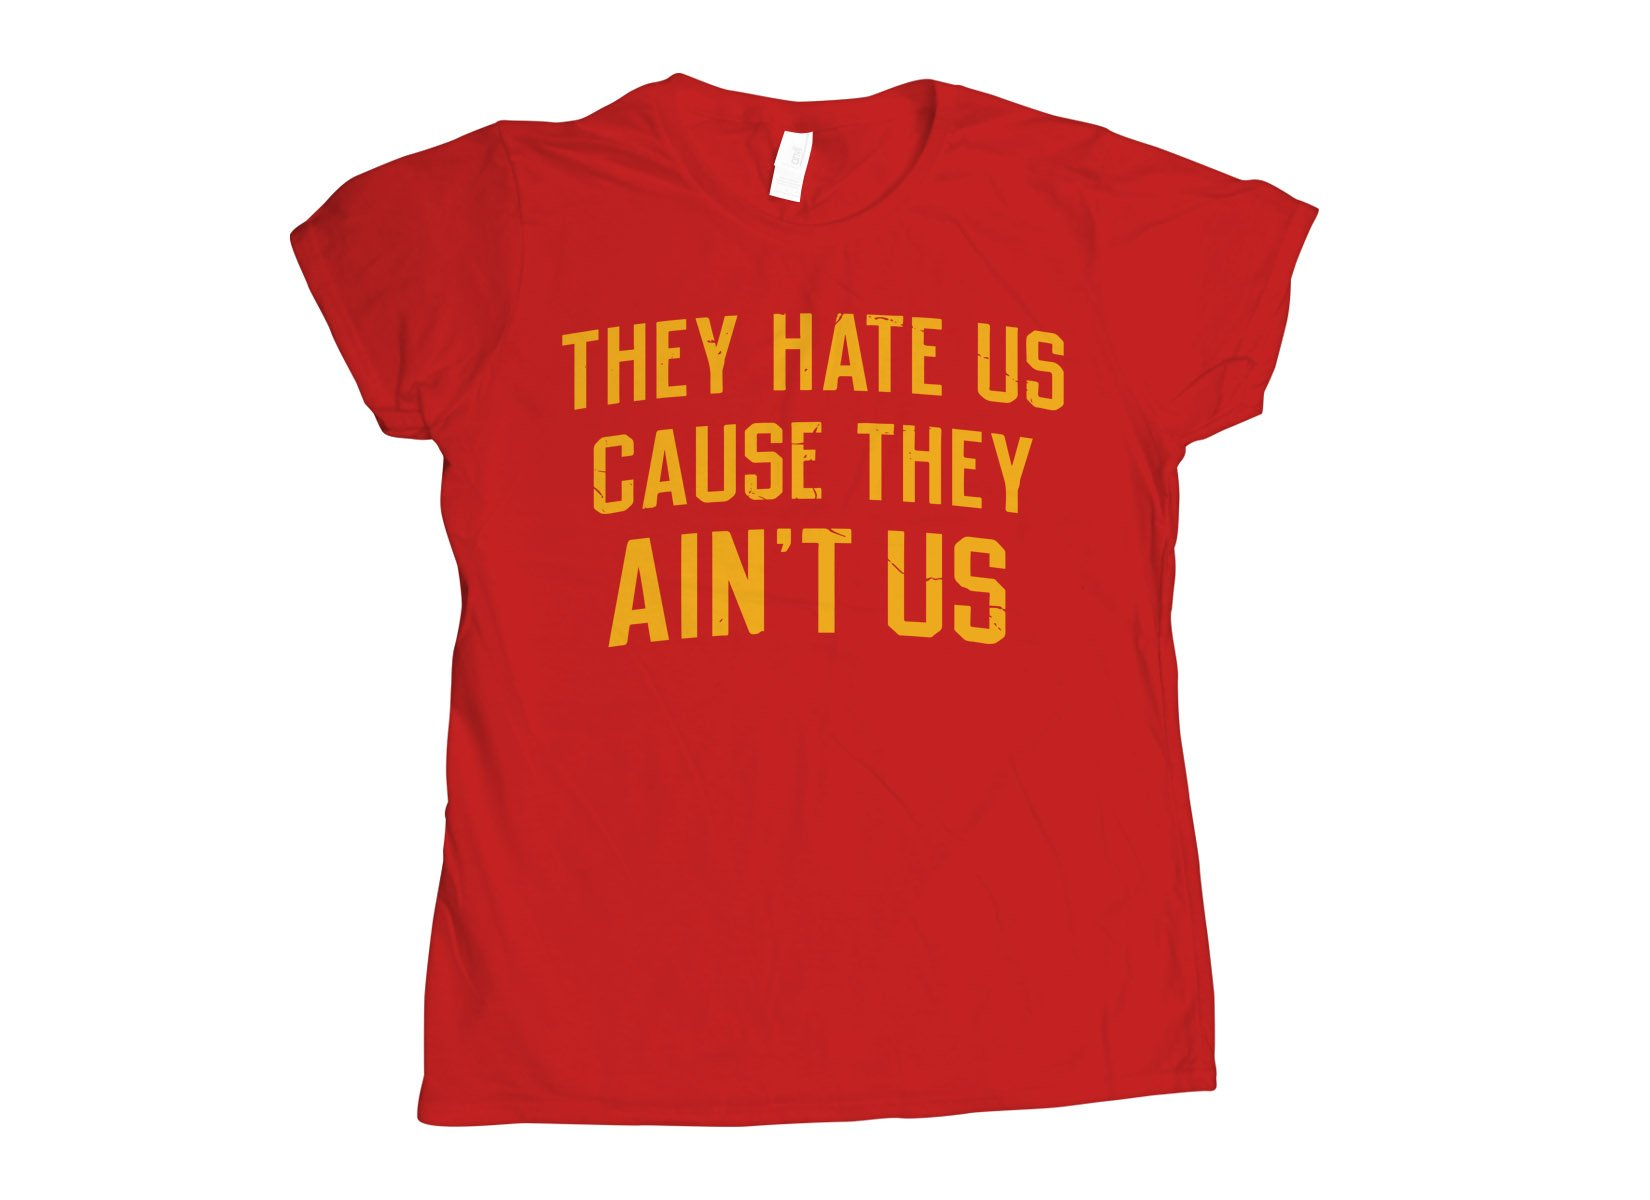 They Hate Us Cause They Ain't Us on Womens T-Shirt